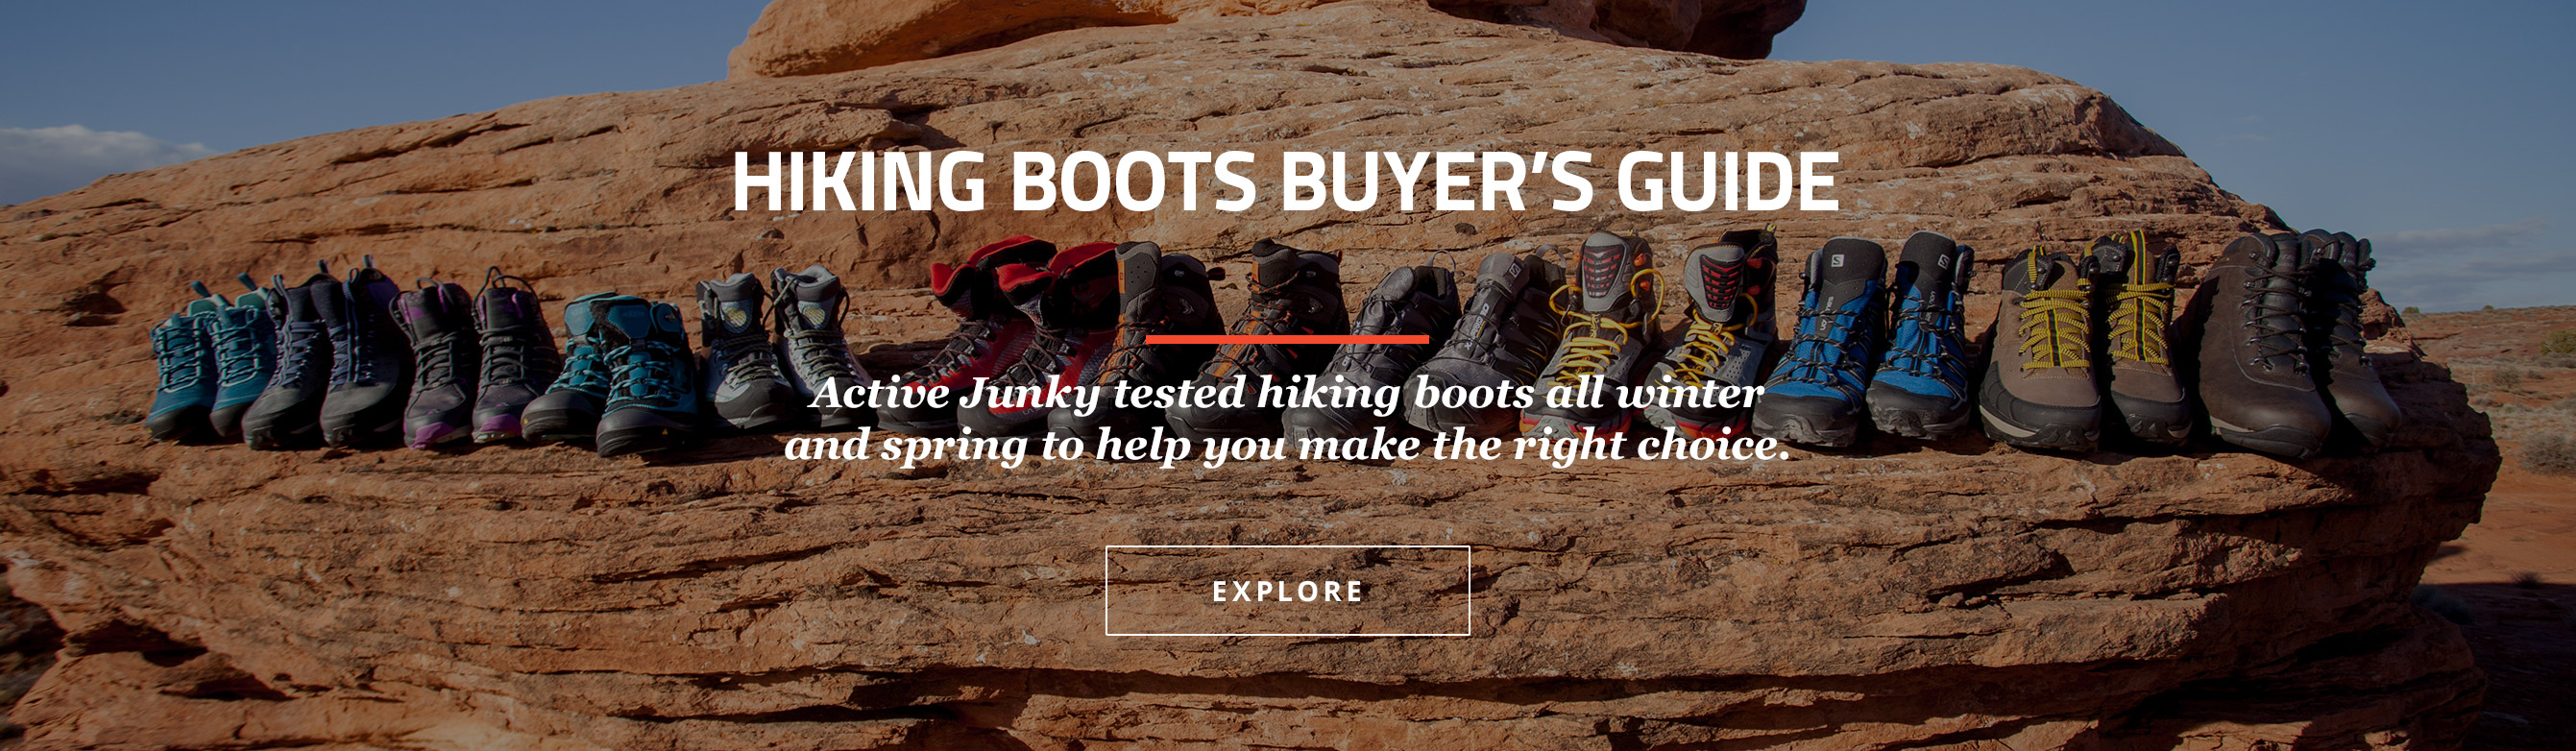 Hiking Boots Buyer's Guide